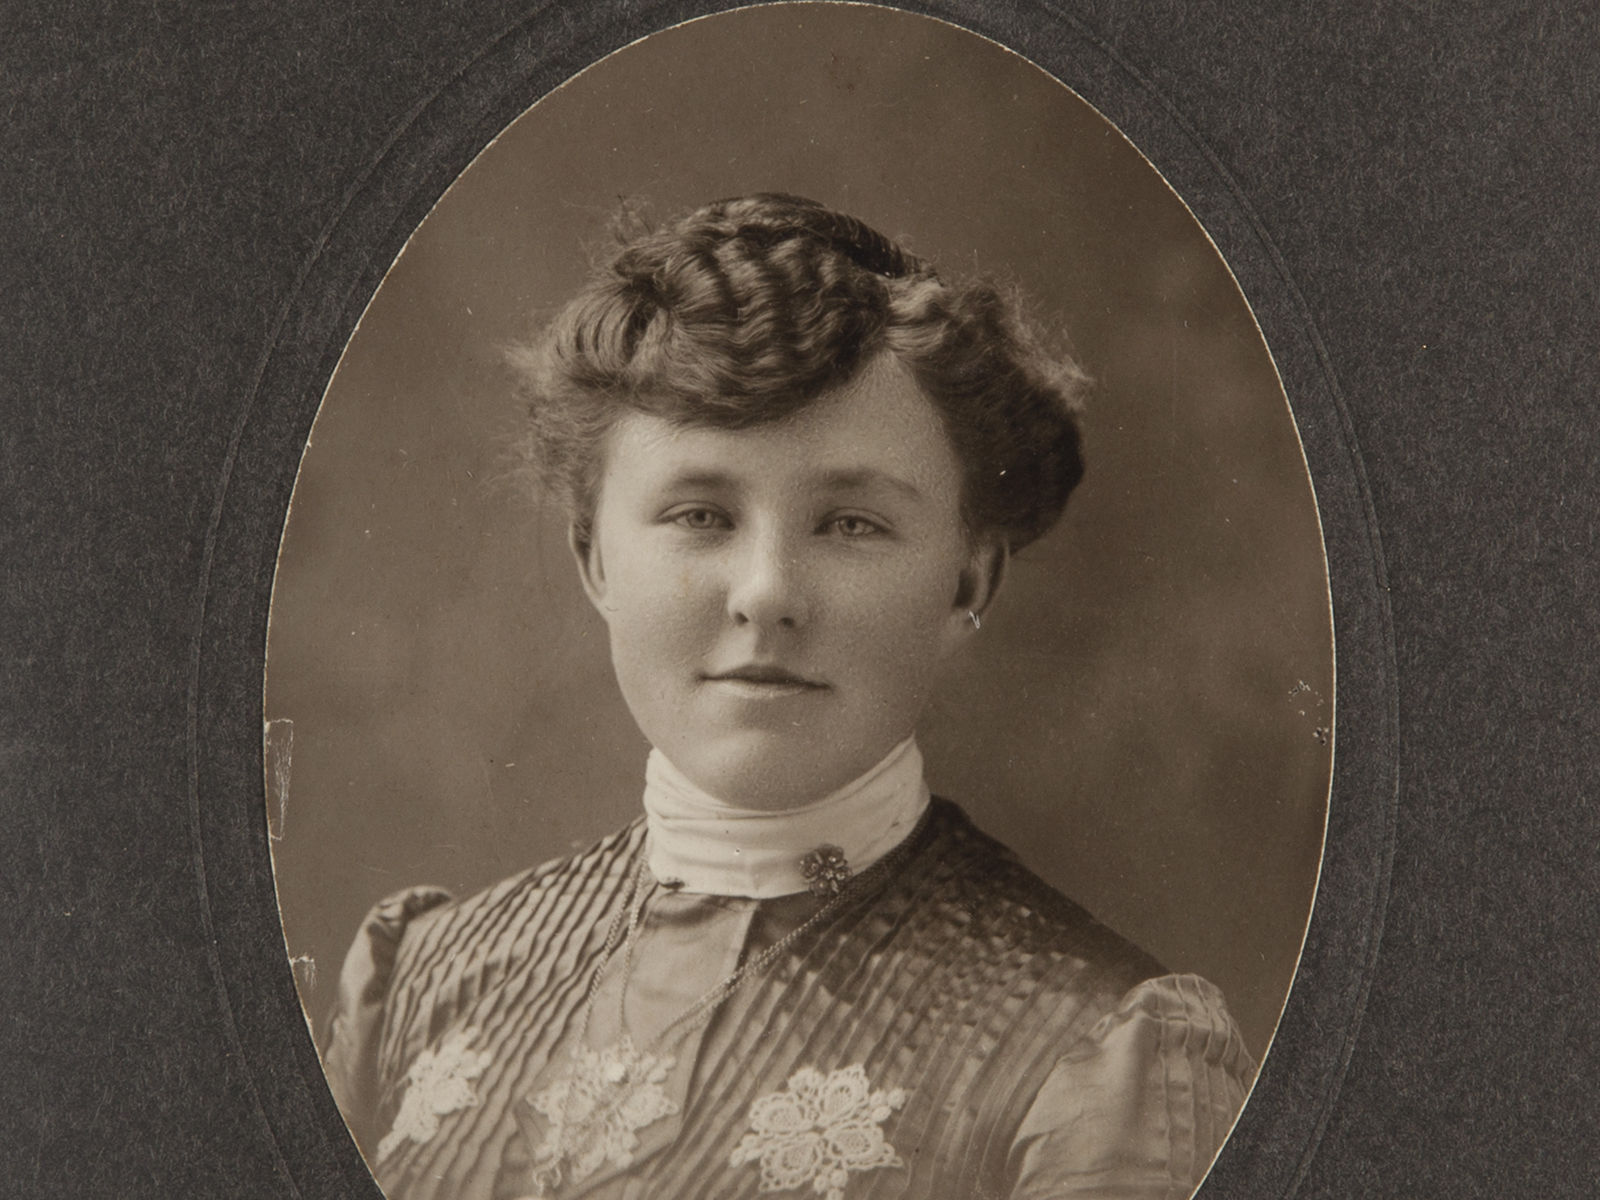 Antique Cabinet Card - Vintage Photograph - Woman from Davenport IA - Free Ship